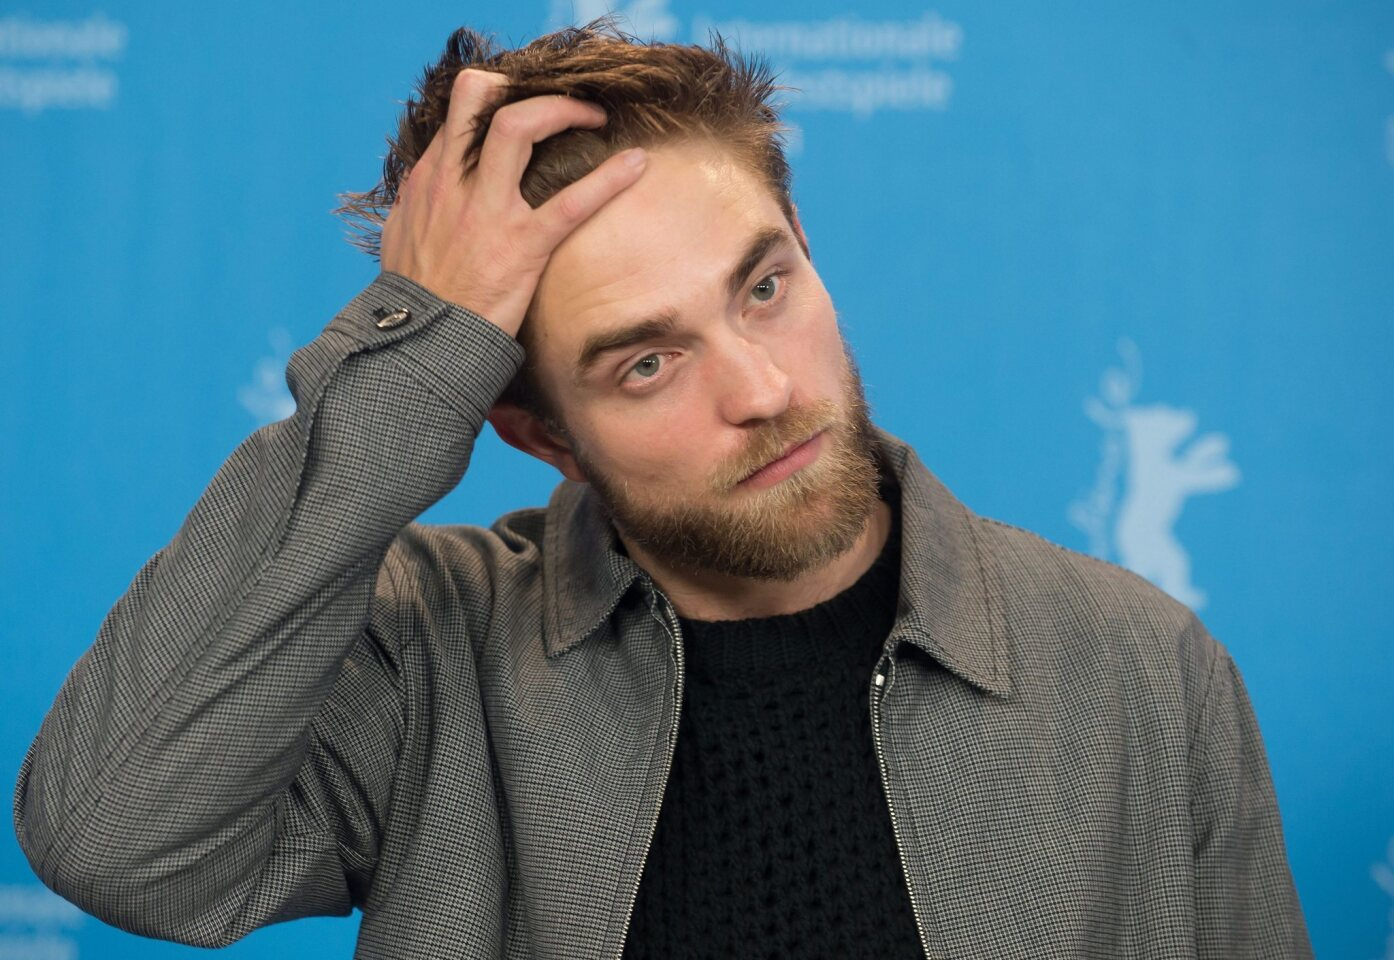 Robert Pattinson: Life in Pictures